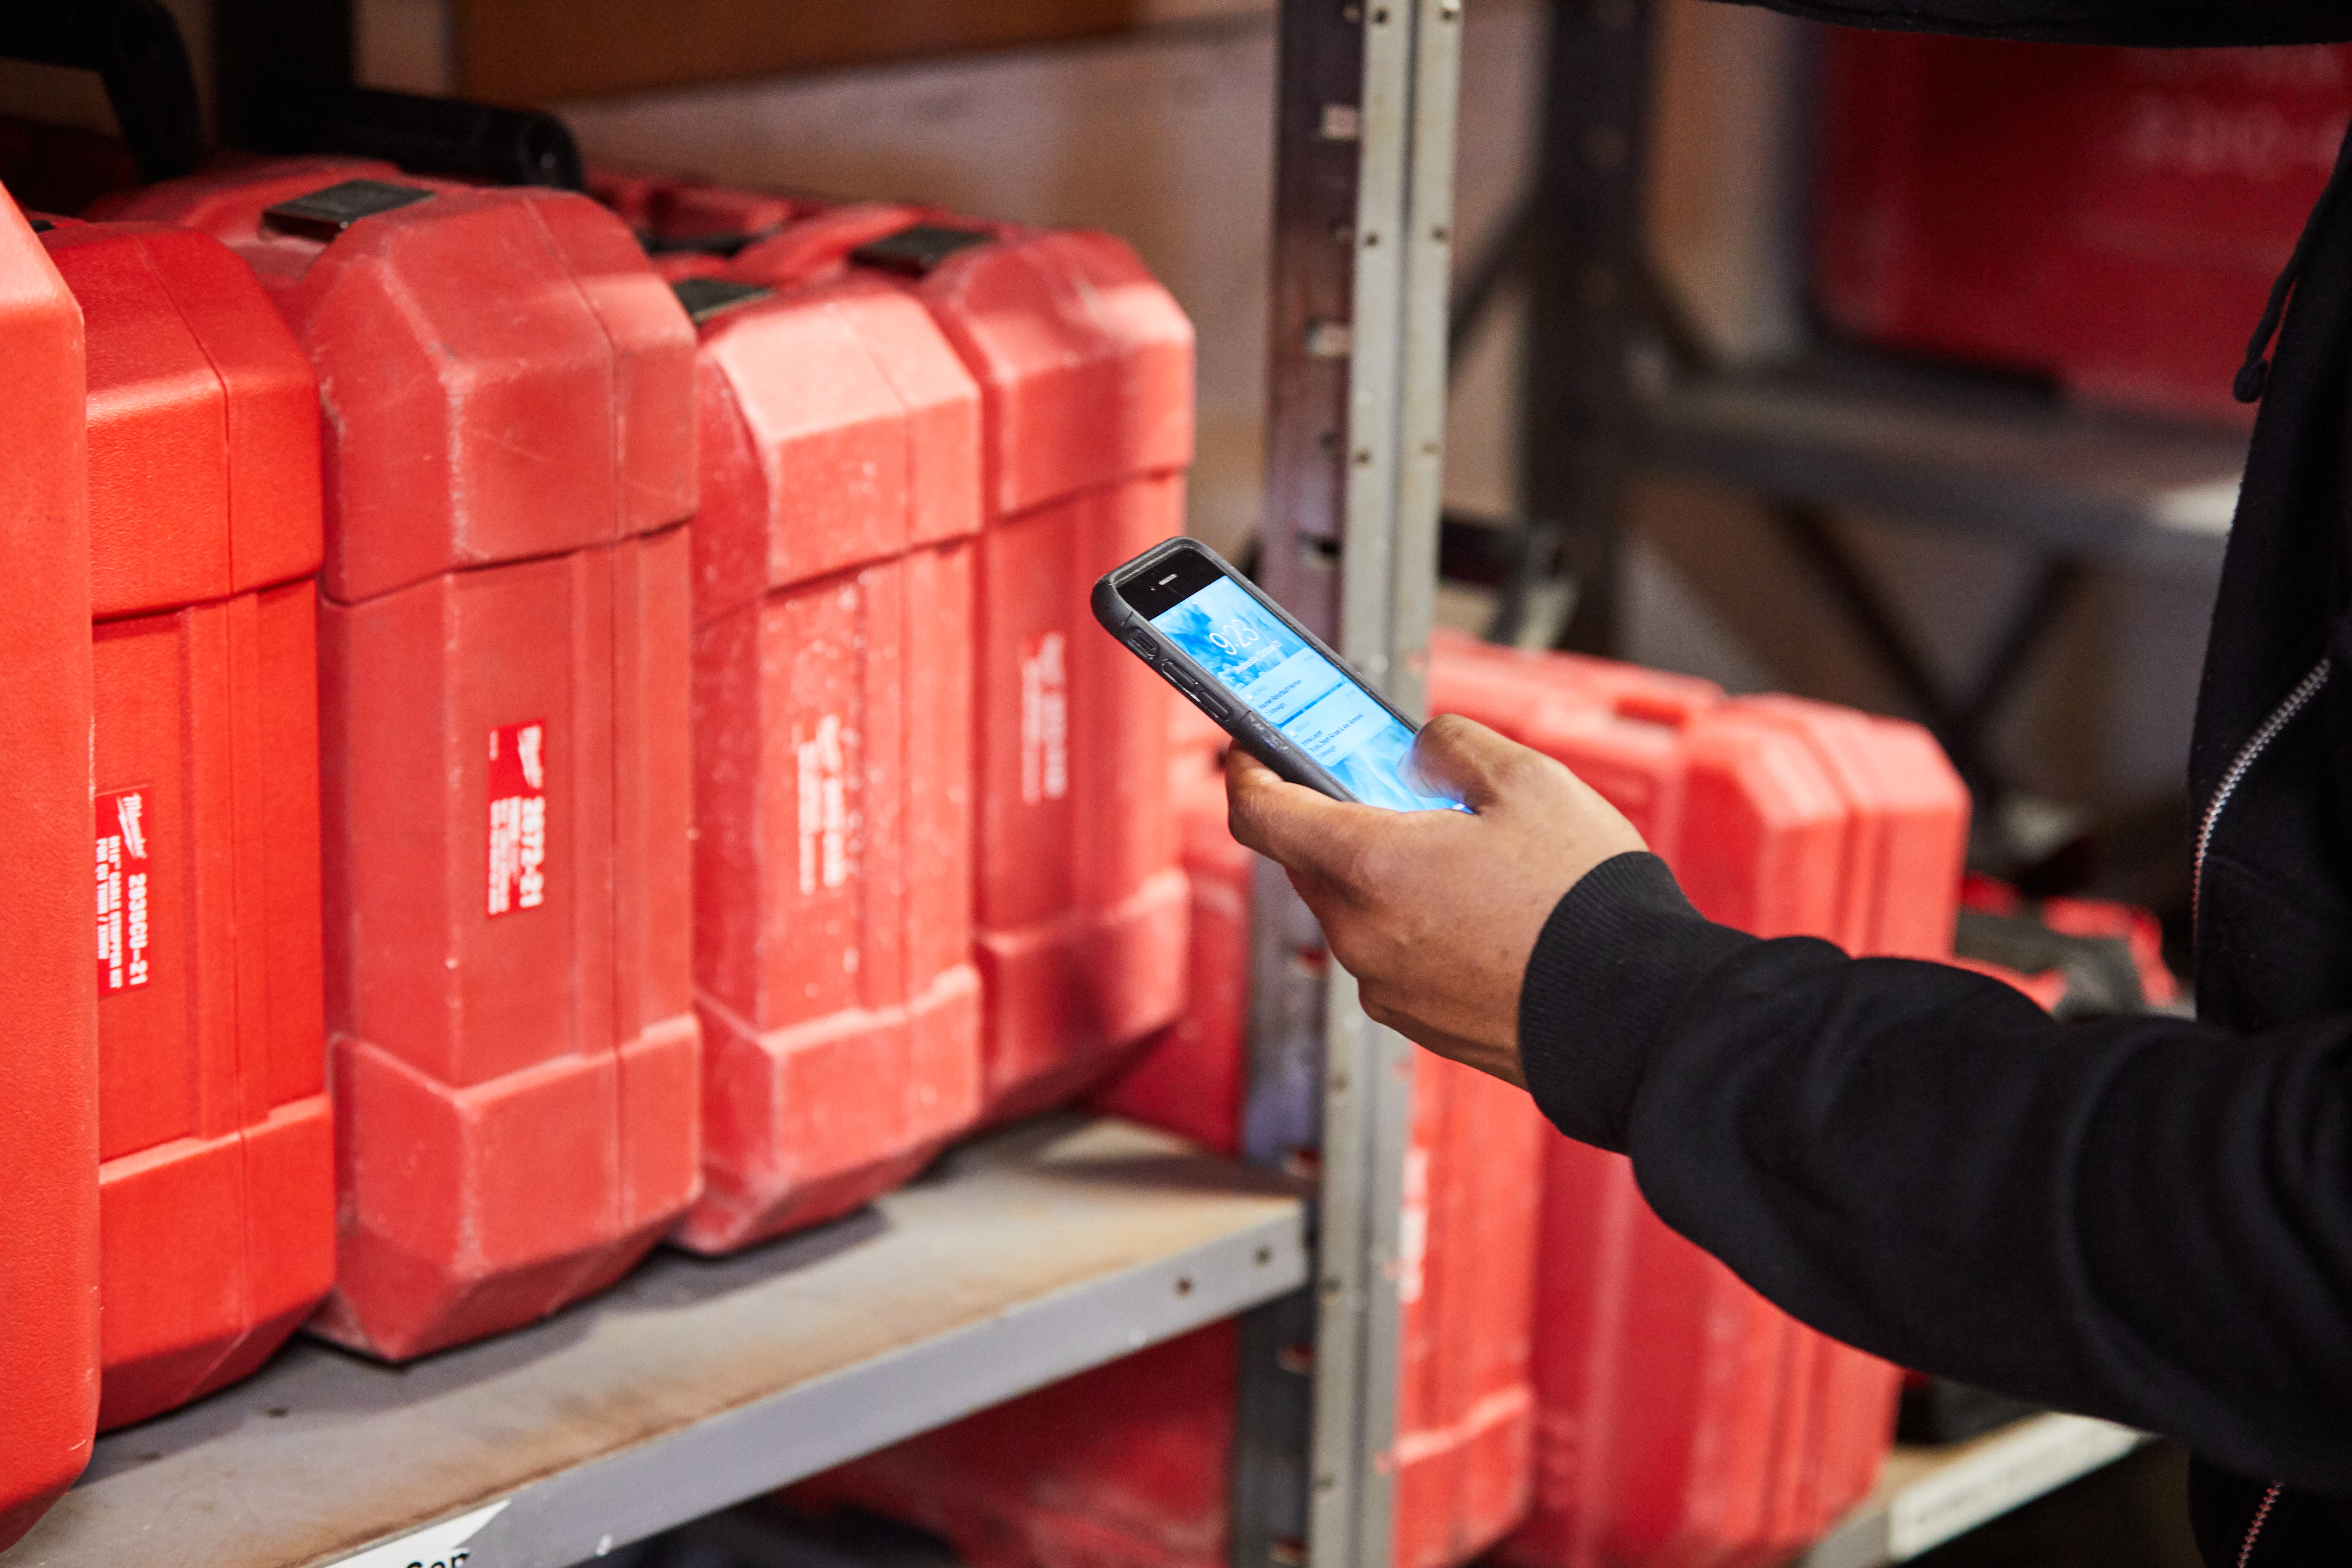 A tool crib manager among inventory shelving uses smartphone